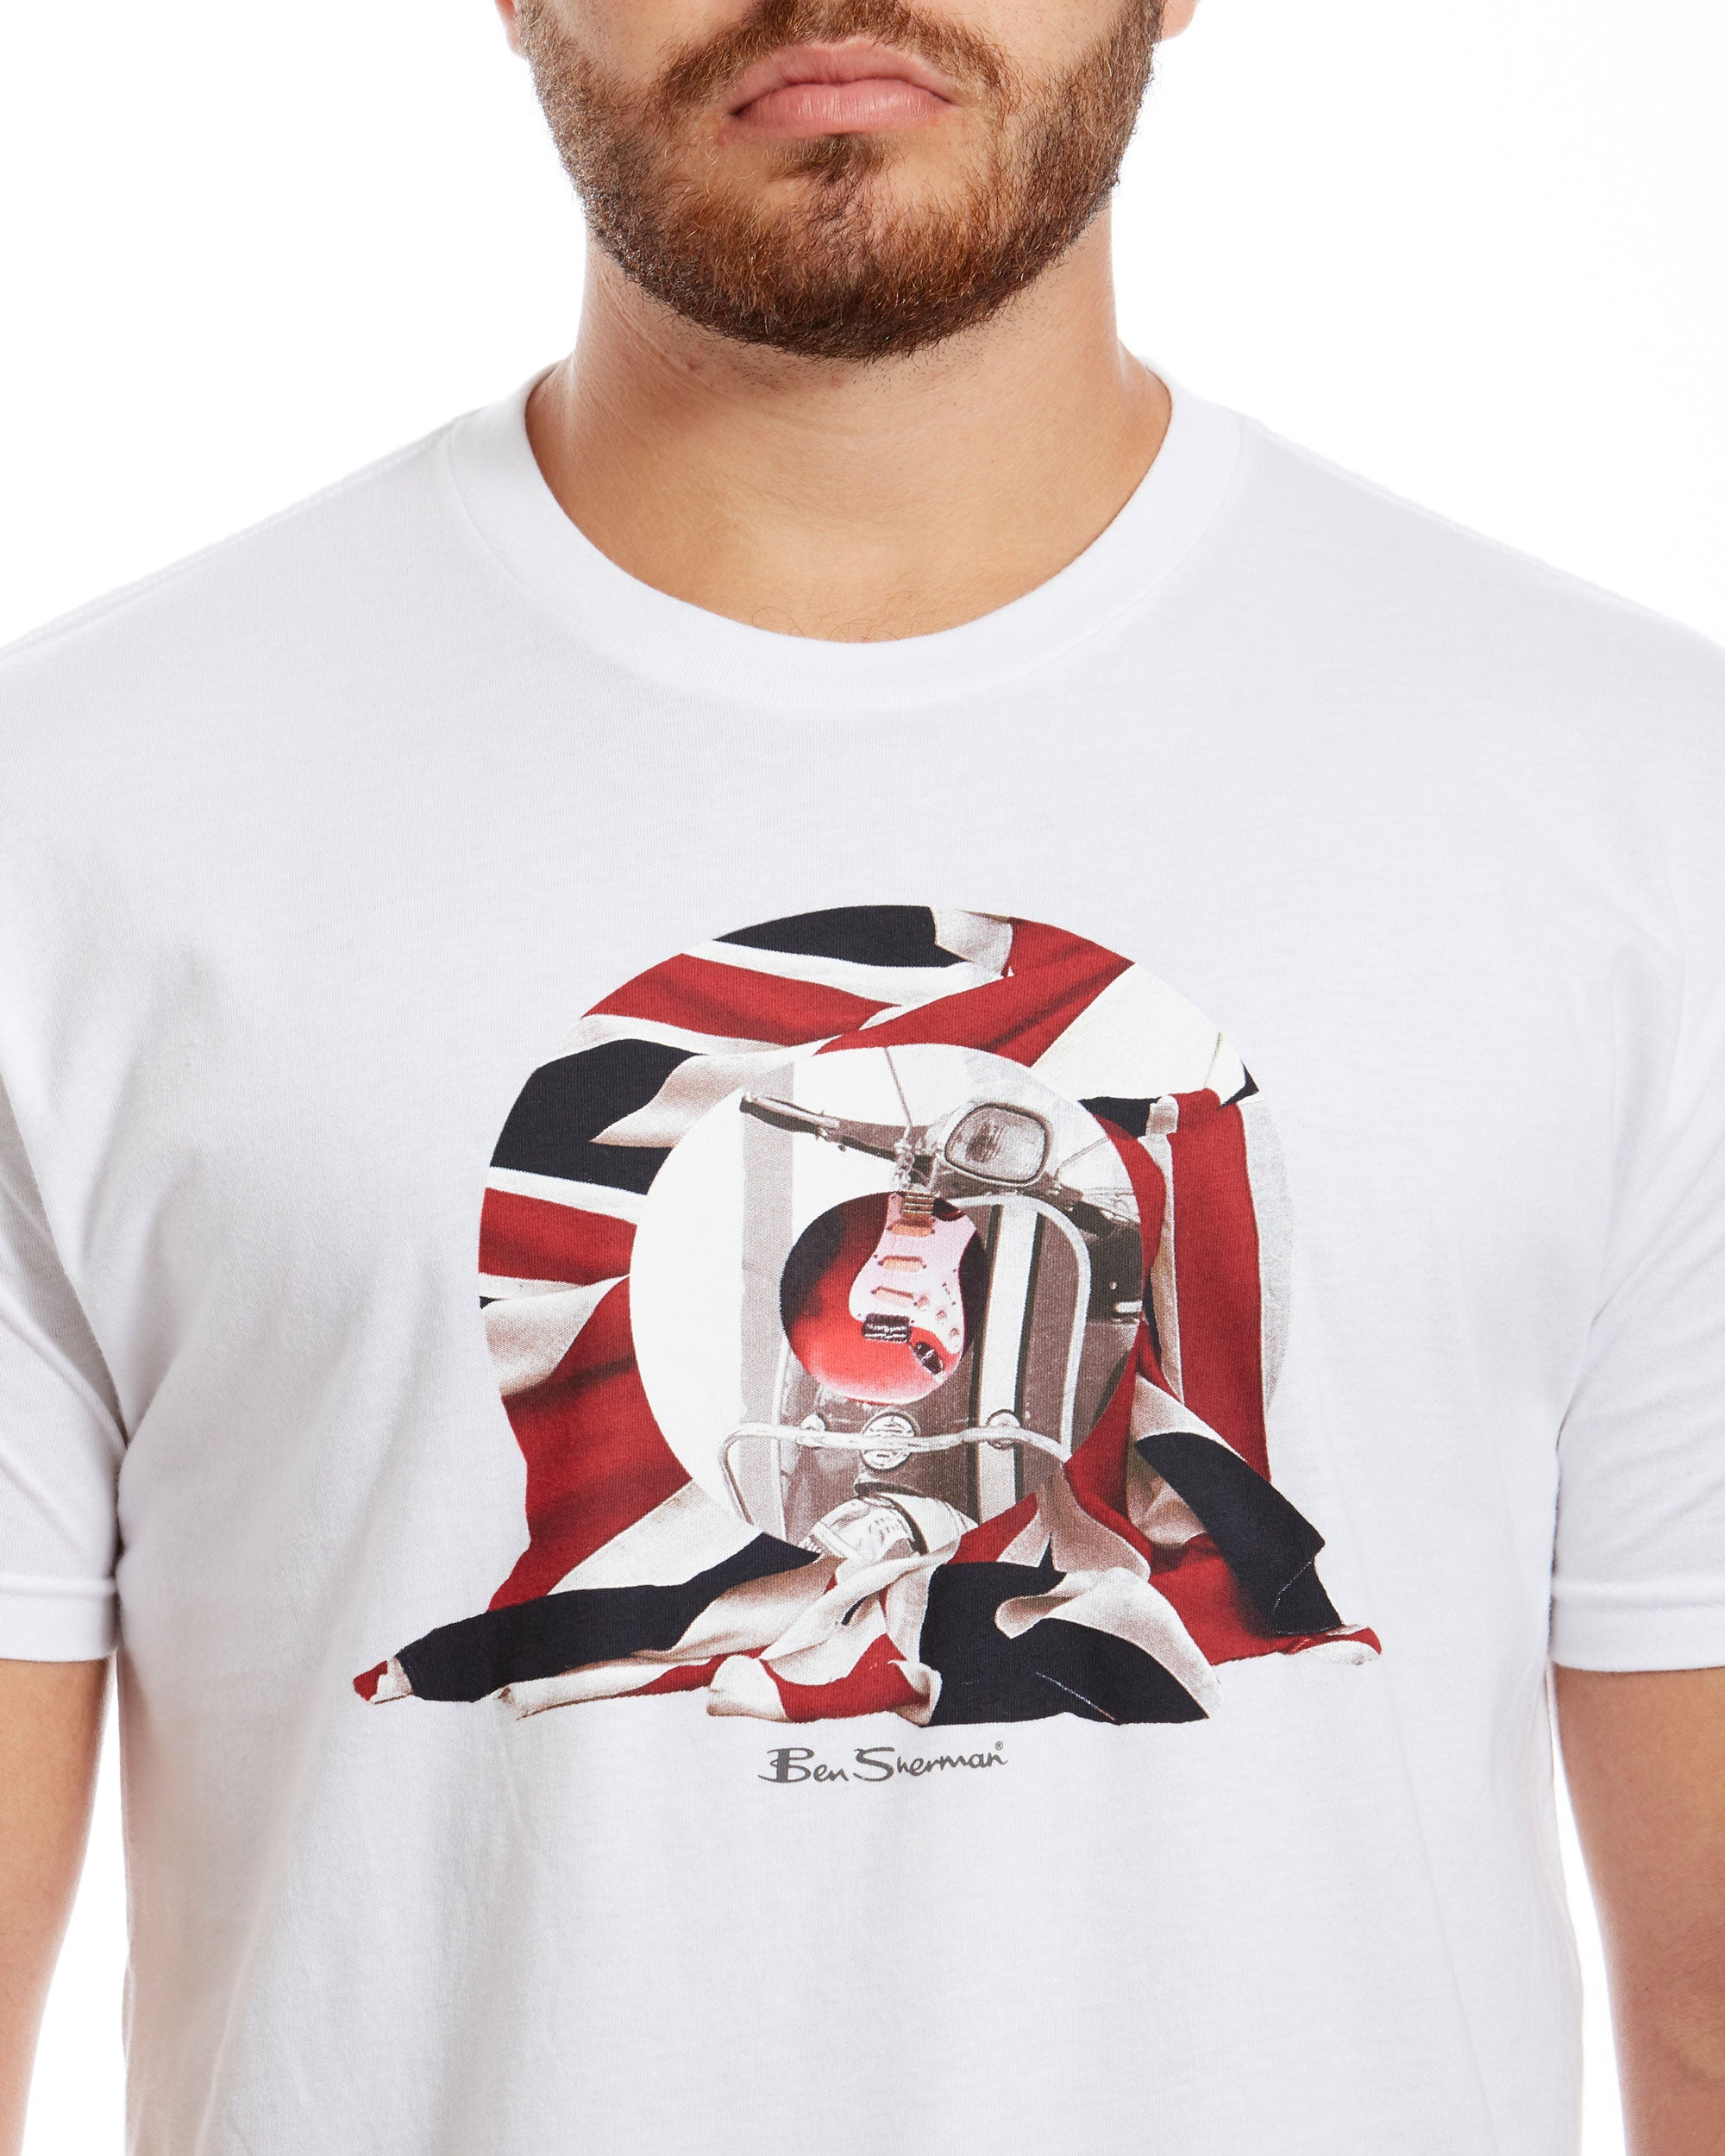 9bfc6e649 Scooter Target Graphic Tee - White – Ben Sherman